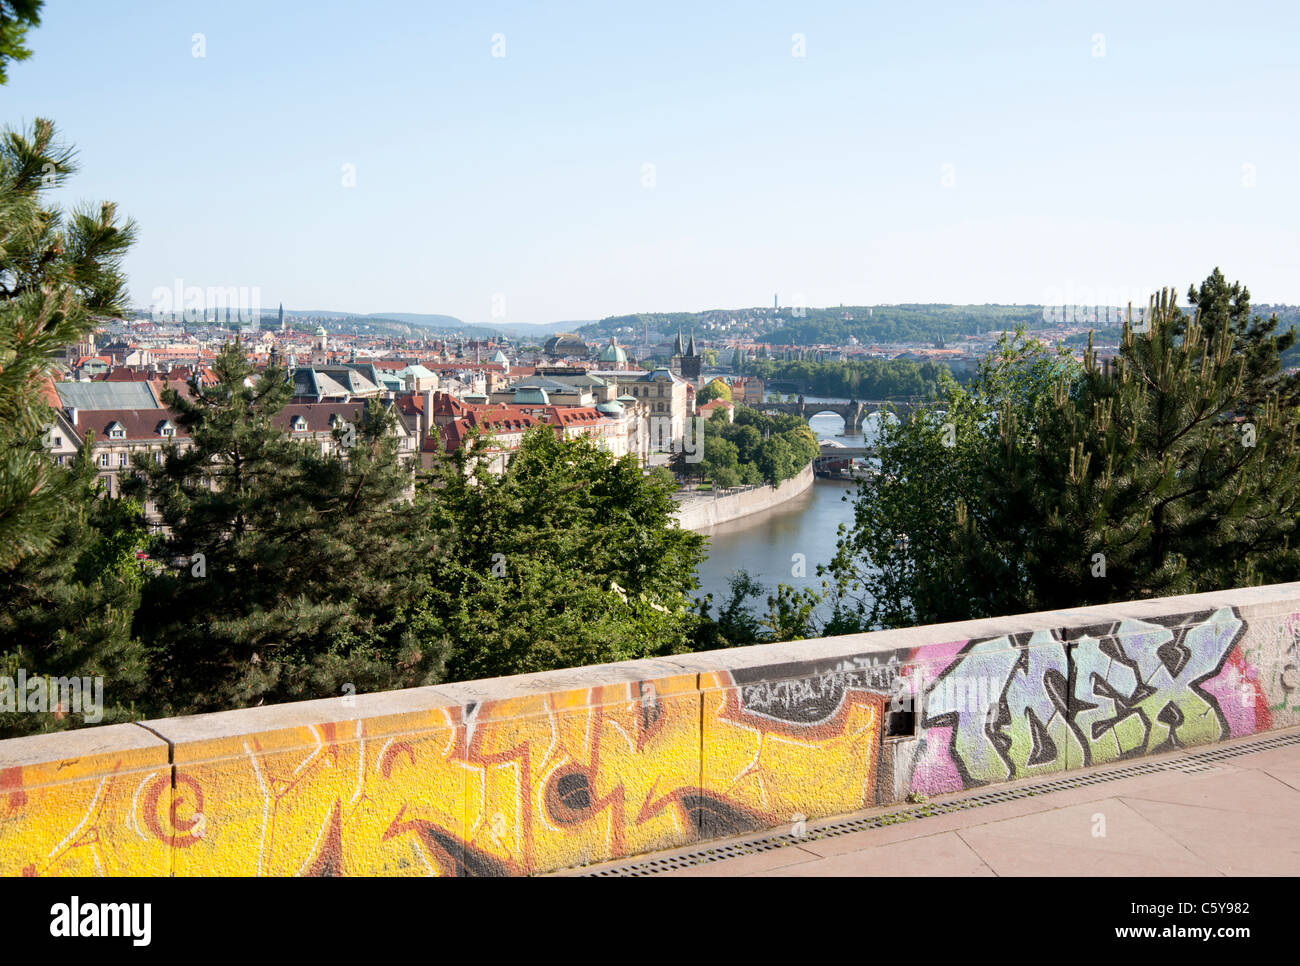 Modern-day Prague: a blend of history and modernity - Stock Image